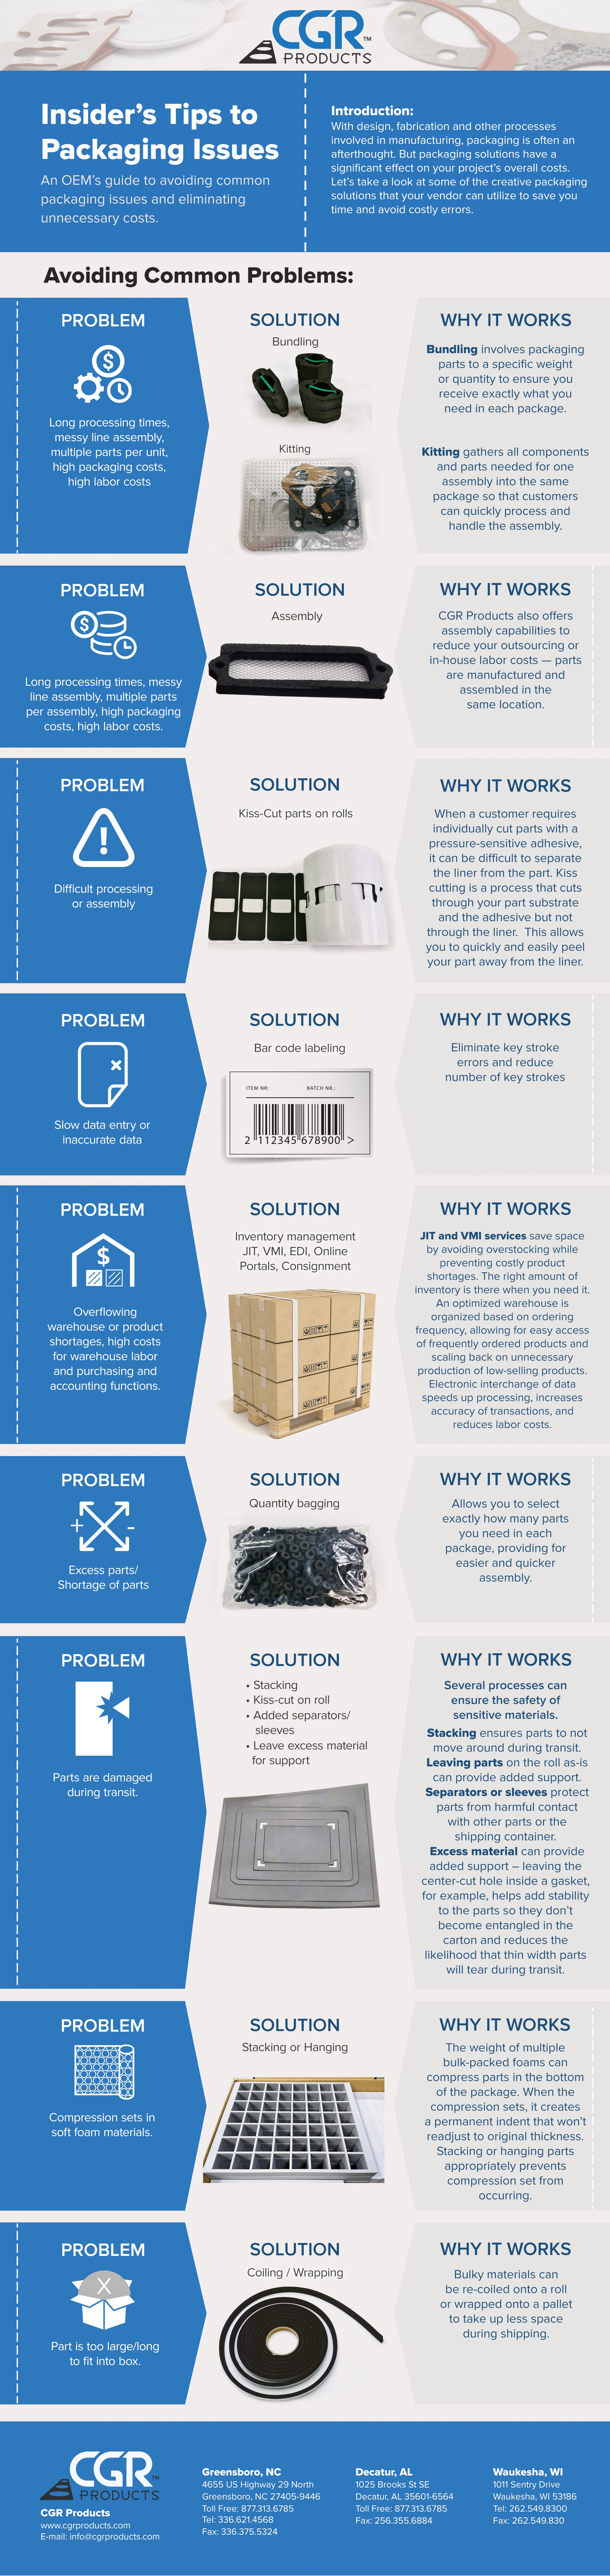 "[Infographic] Insider's Tips to Packaging Issues""><a href="